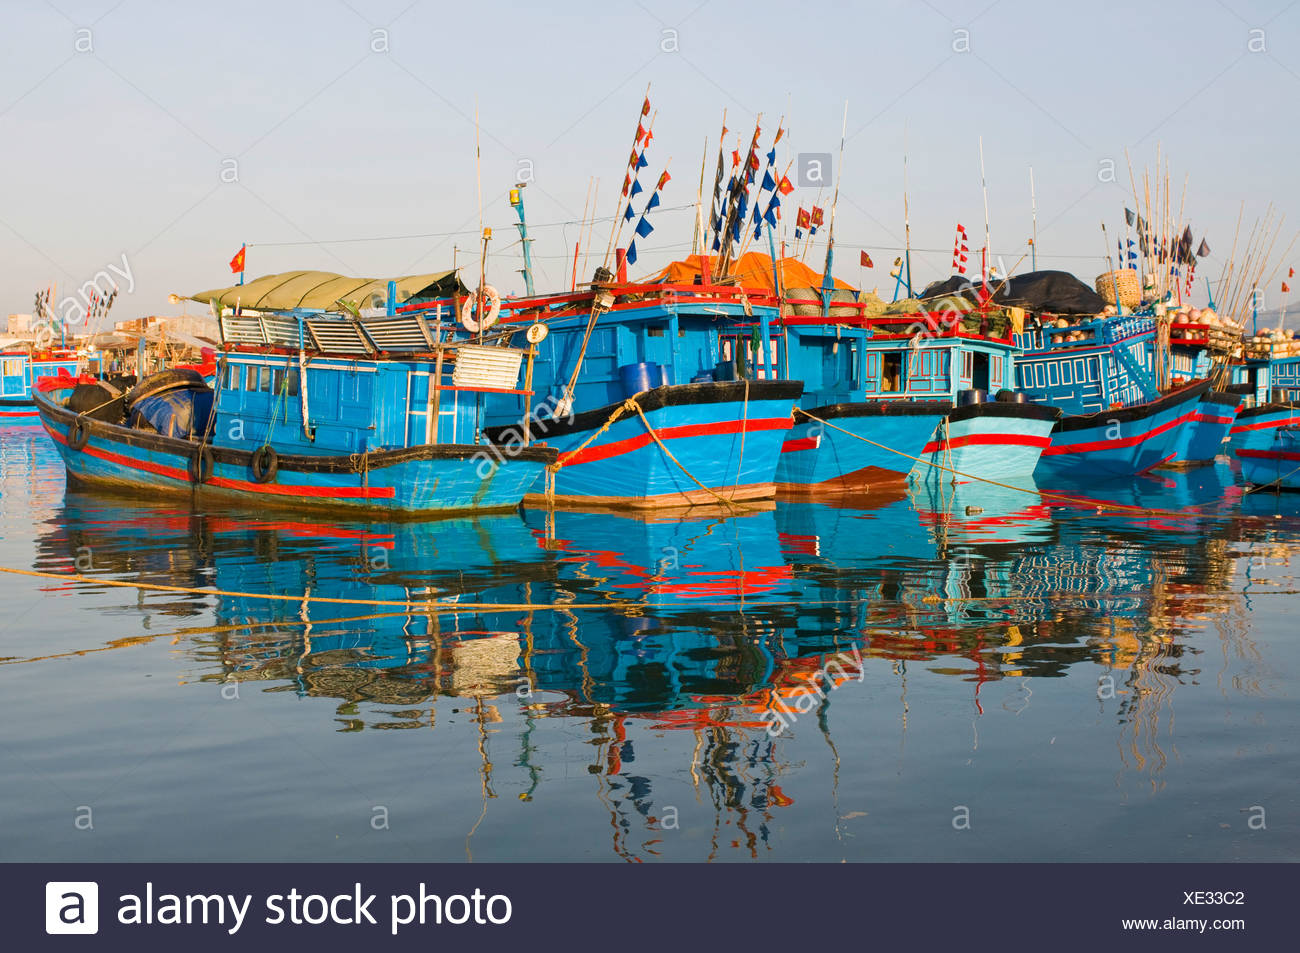 Blue fishing boats in the harbour of Nha Trang, Vietnam, Asia - Stock Image